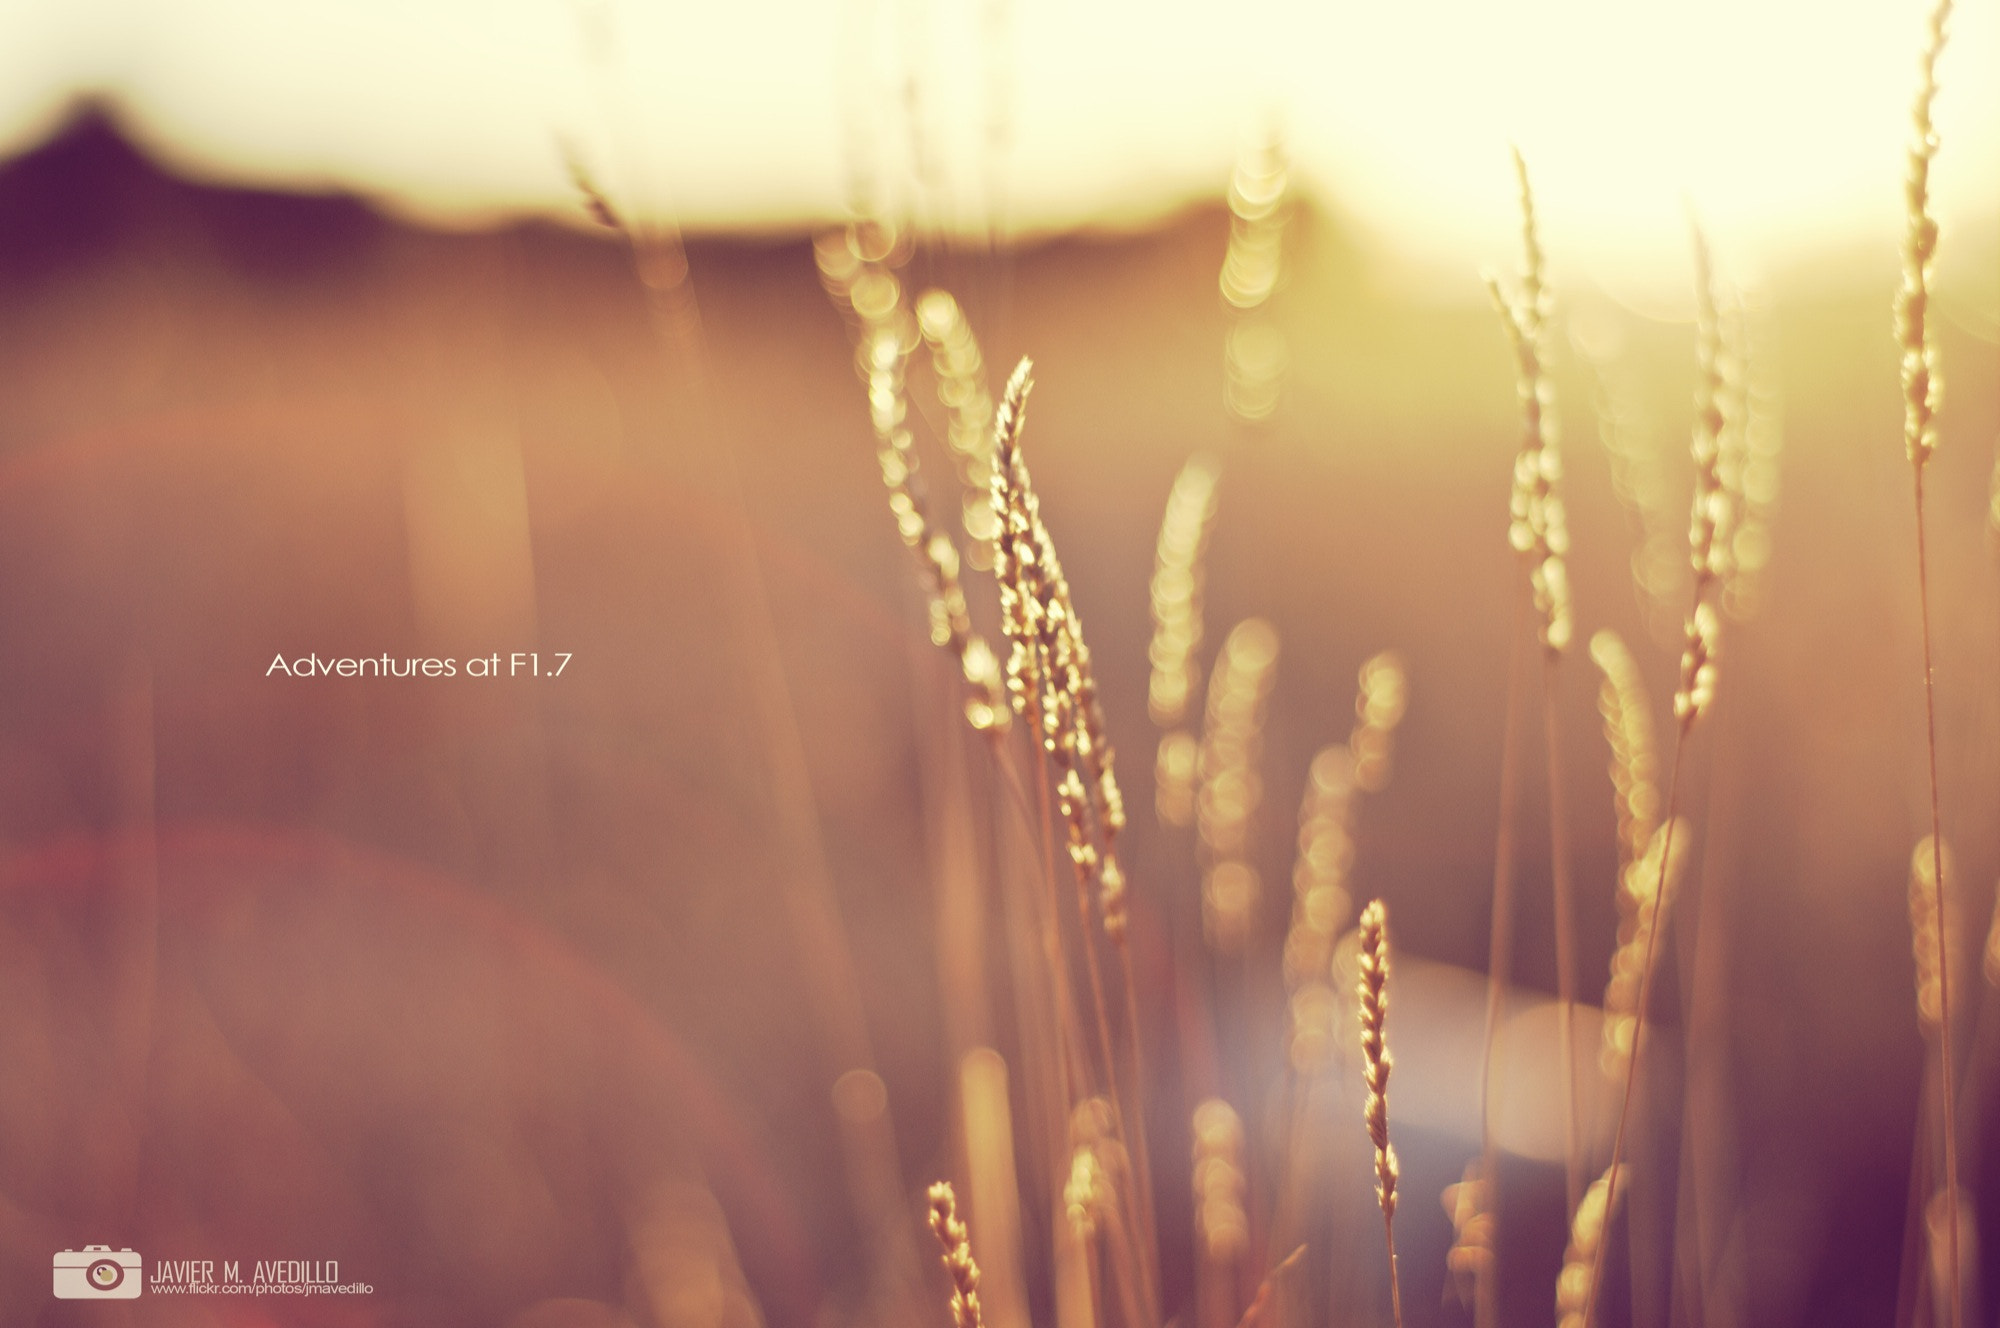 Photograph LIGHT (Adventures at F1.7) by Javier M. Avedillo on 500px